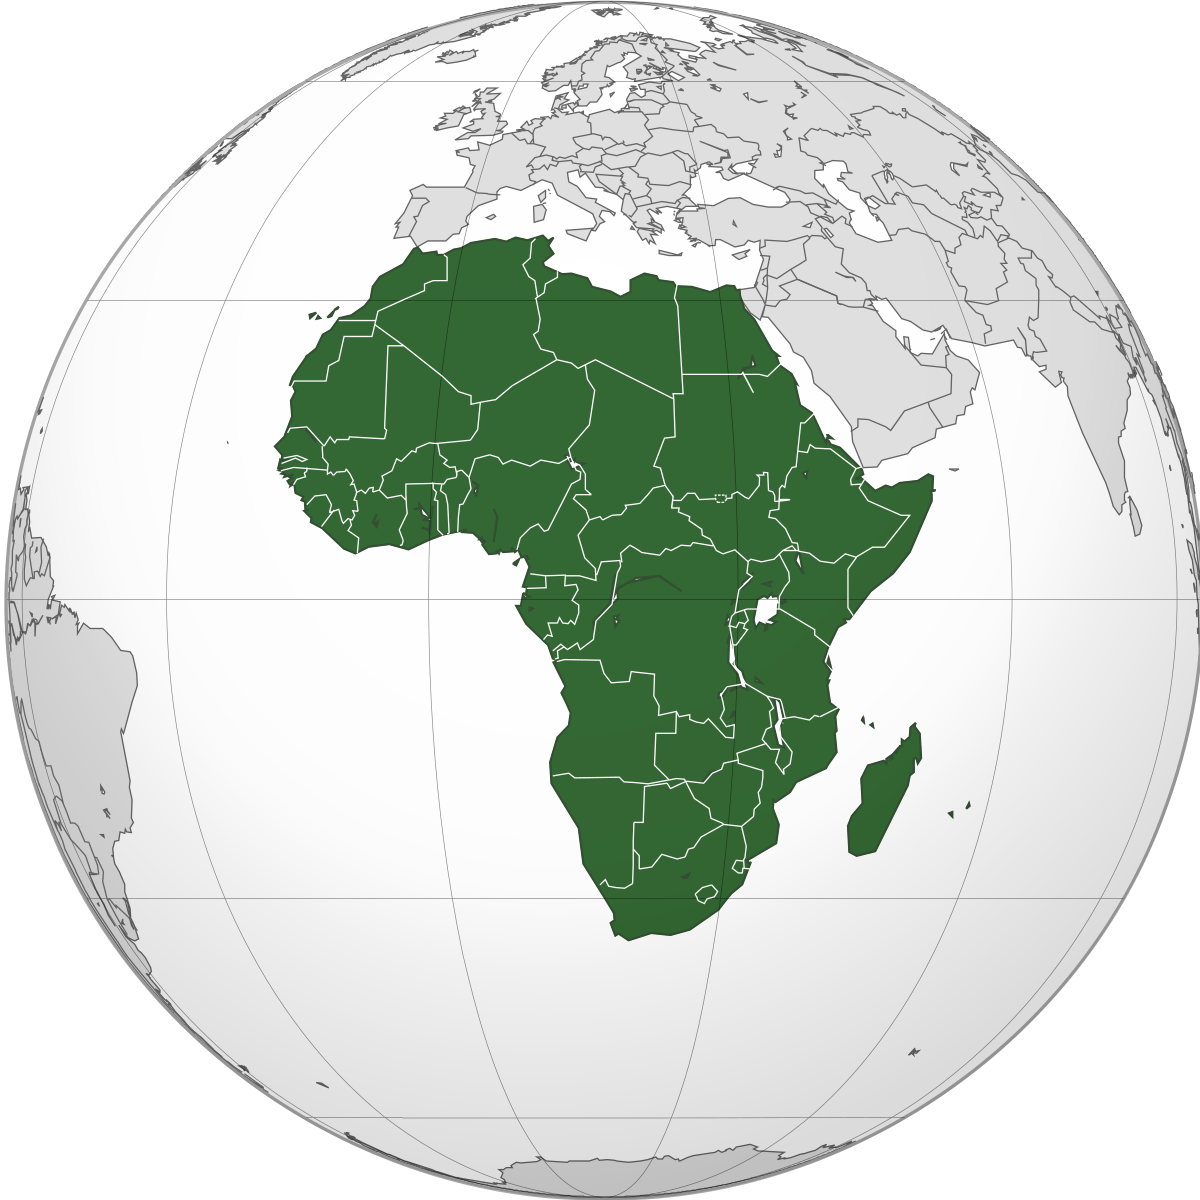 Love Africa Mission